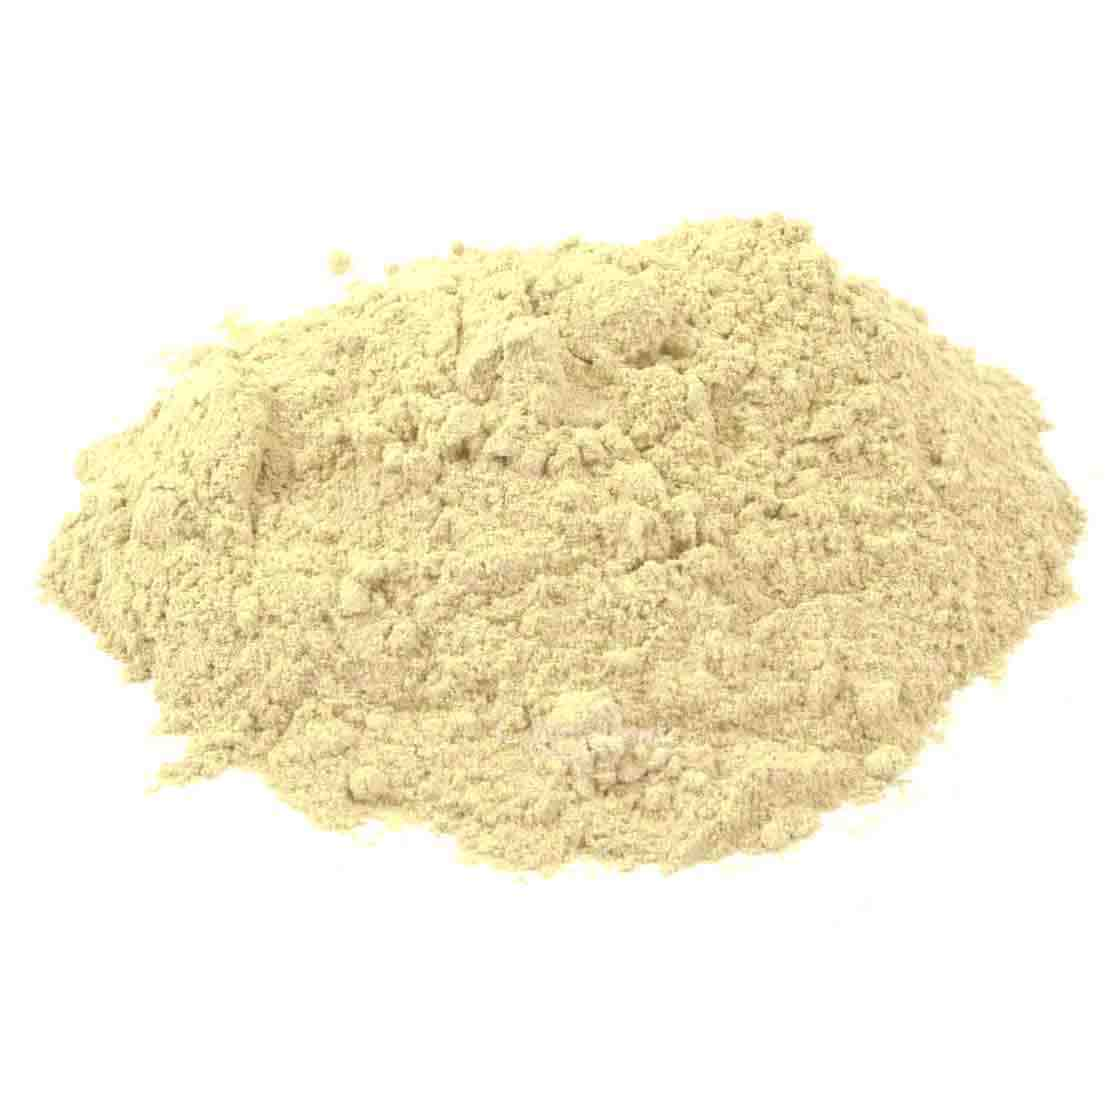 100% Pure Multani Mitti Powder